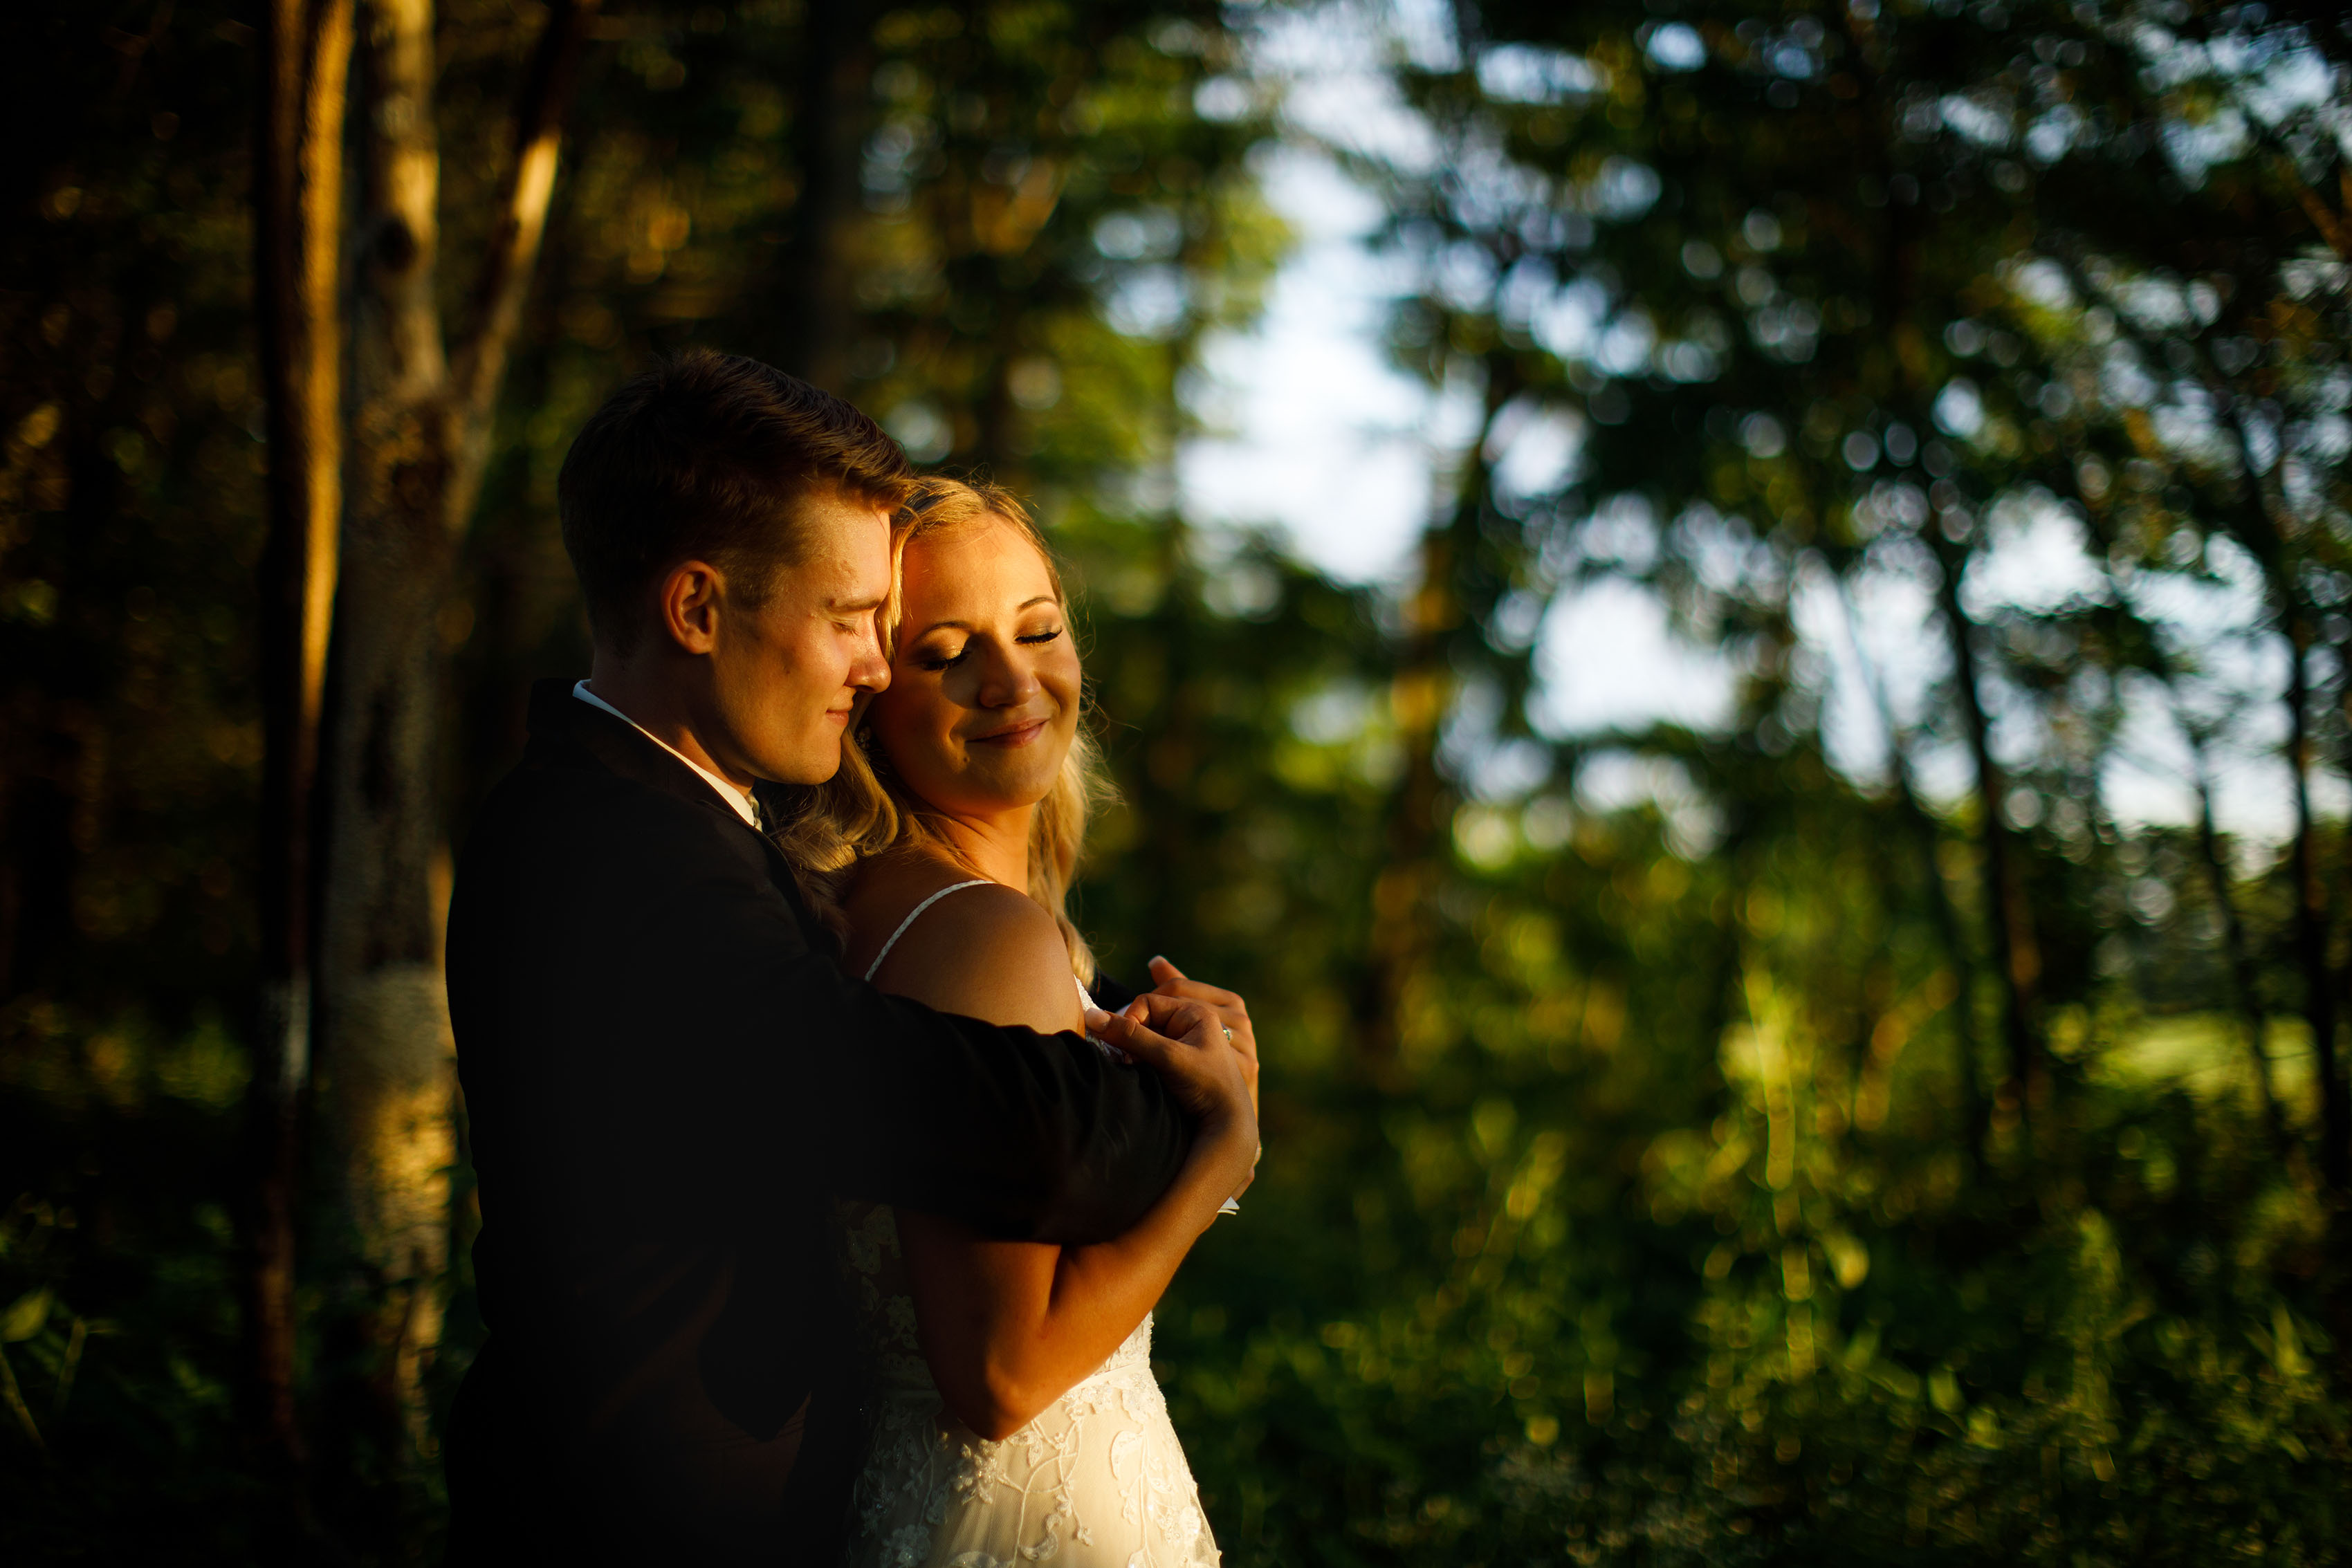 The newlyweds share a moment together in the trees during their Emerson Fields wedding